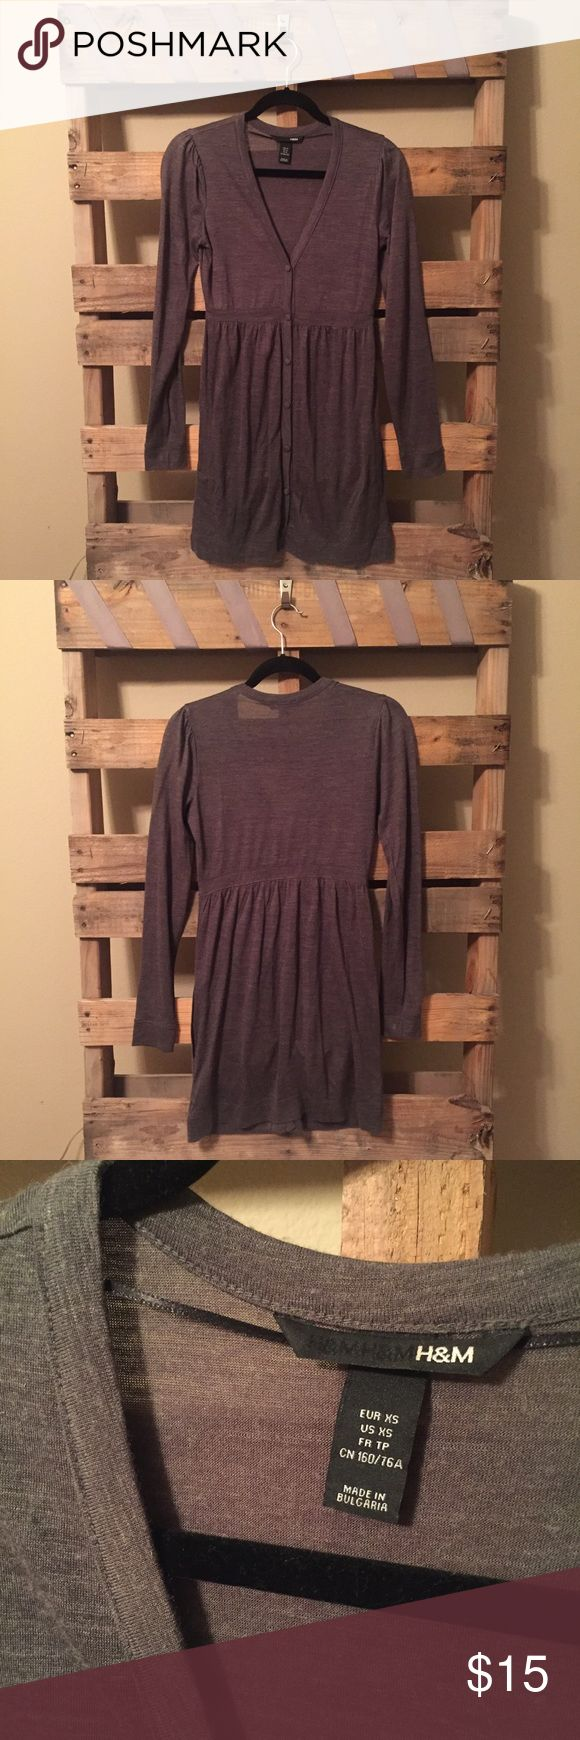 H&M Long Sleeve Dress Grey long sleeve, button front dress.  So flattering and equally comfortable. Can be worn alone during a chilly spring day or pleasant fall. Dress up with tights and a jacket for the winter. Very versatile!  Good used condition.  Size XS but I think it runs a bit closer to a S/M. H&M Dresses Long Sleeve